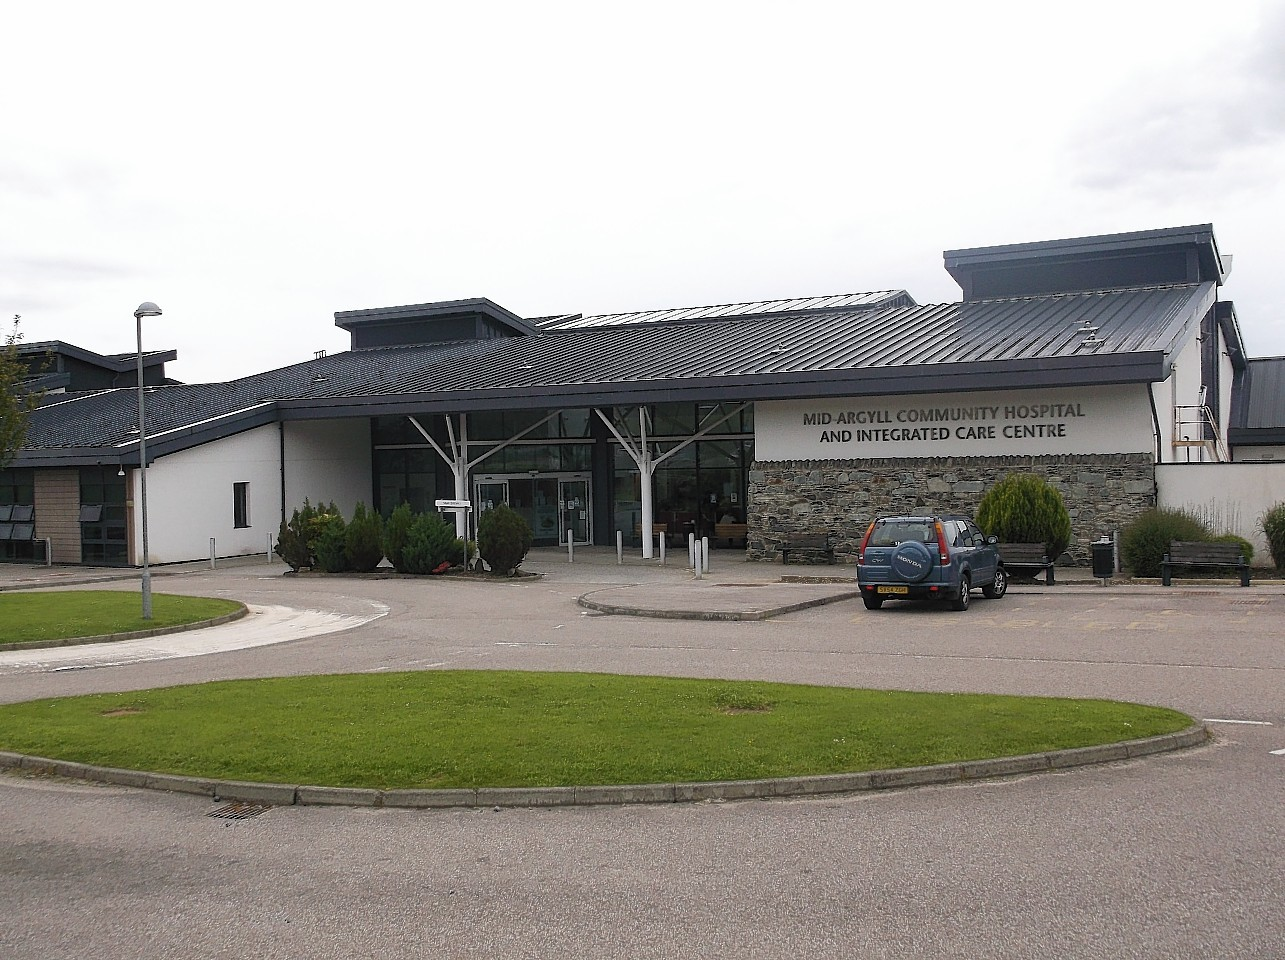 Mid Argyll Community Hospital